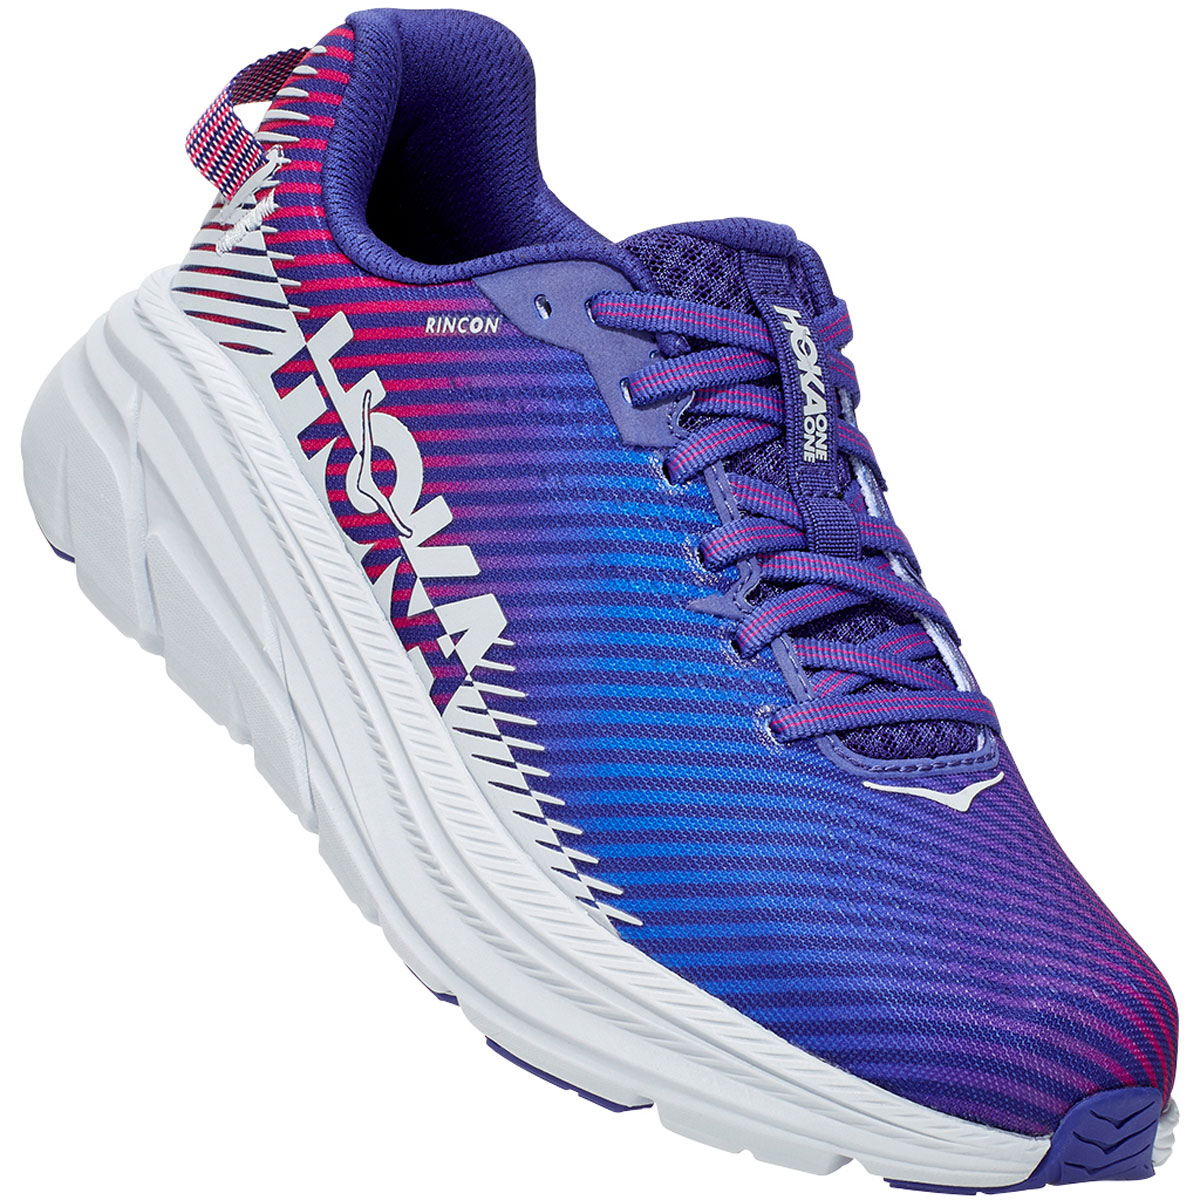 Women's Hoka One One Rincon 2 Running Shoe - Color: Clematis Blue - Size: 5 - Width: Regular, Clematis Blue, large, image 4